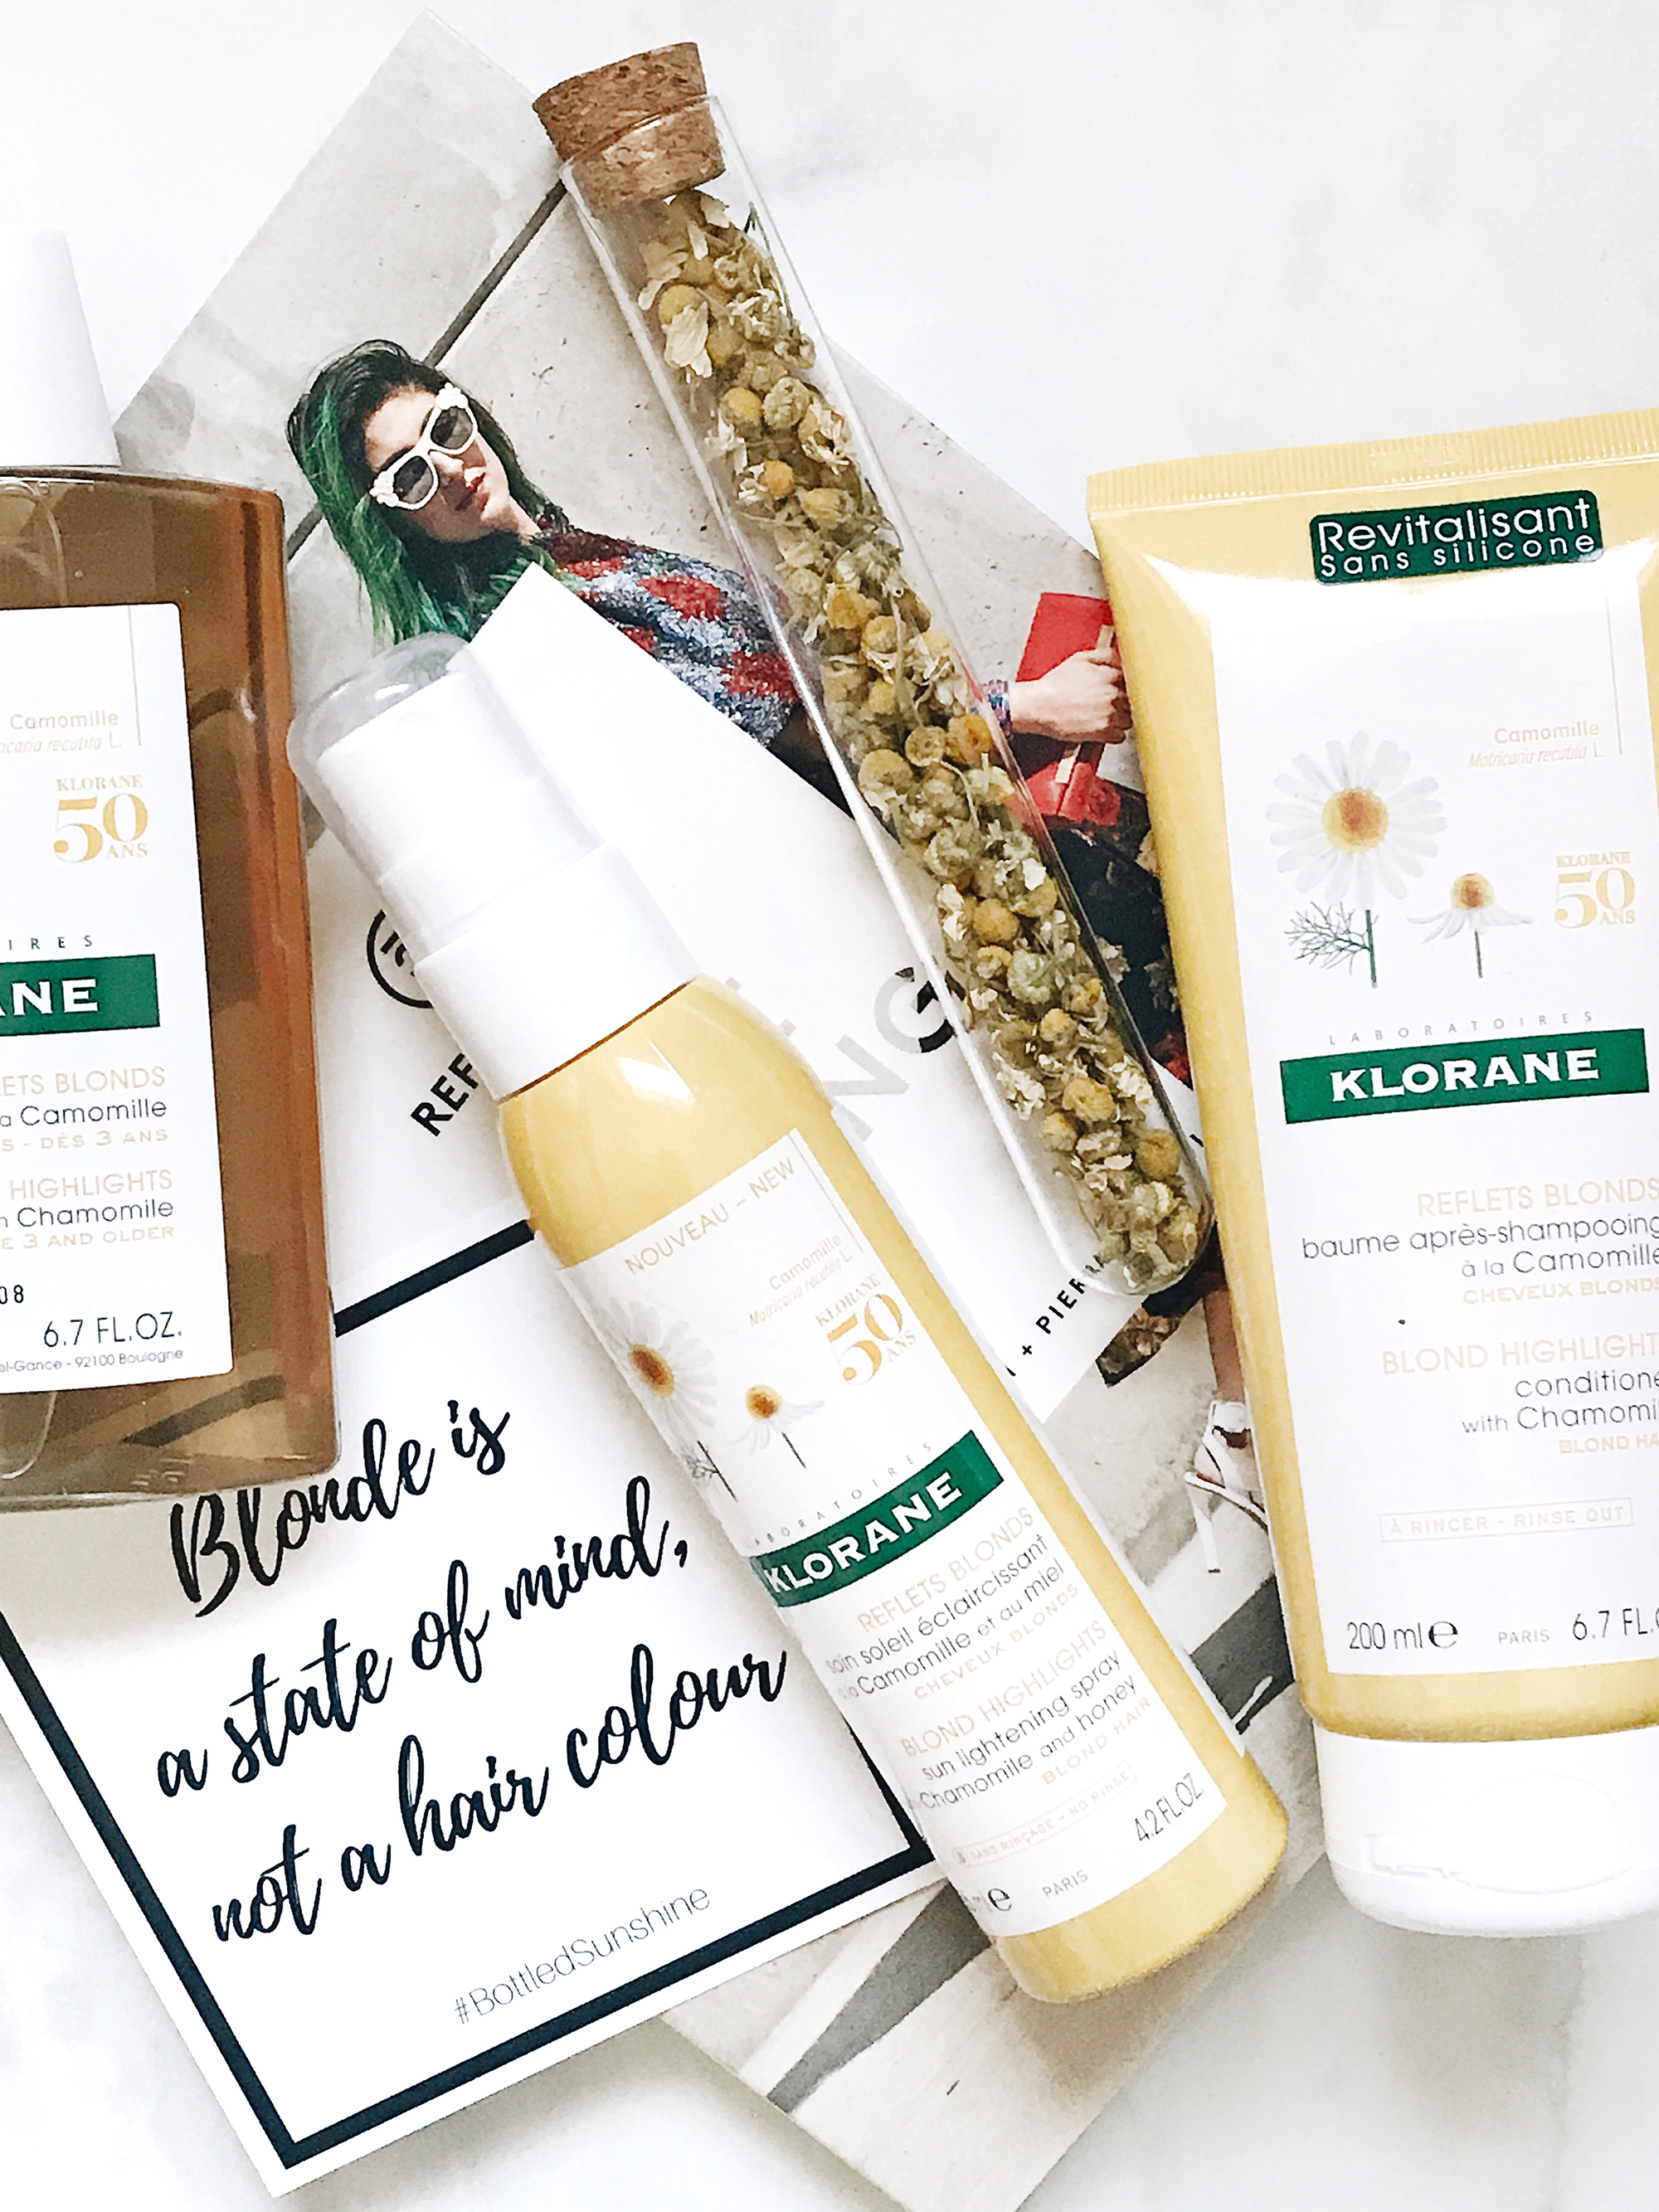 KLORANE chamomile collection for blonde hair